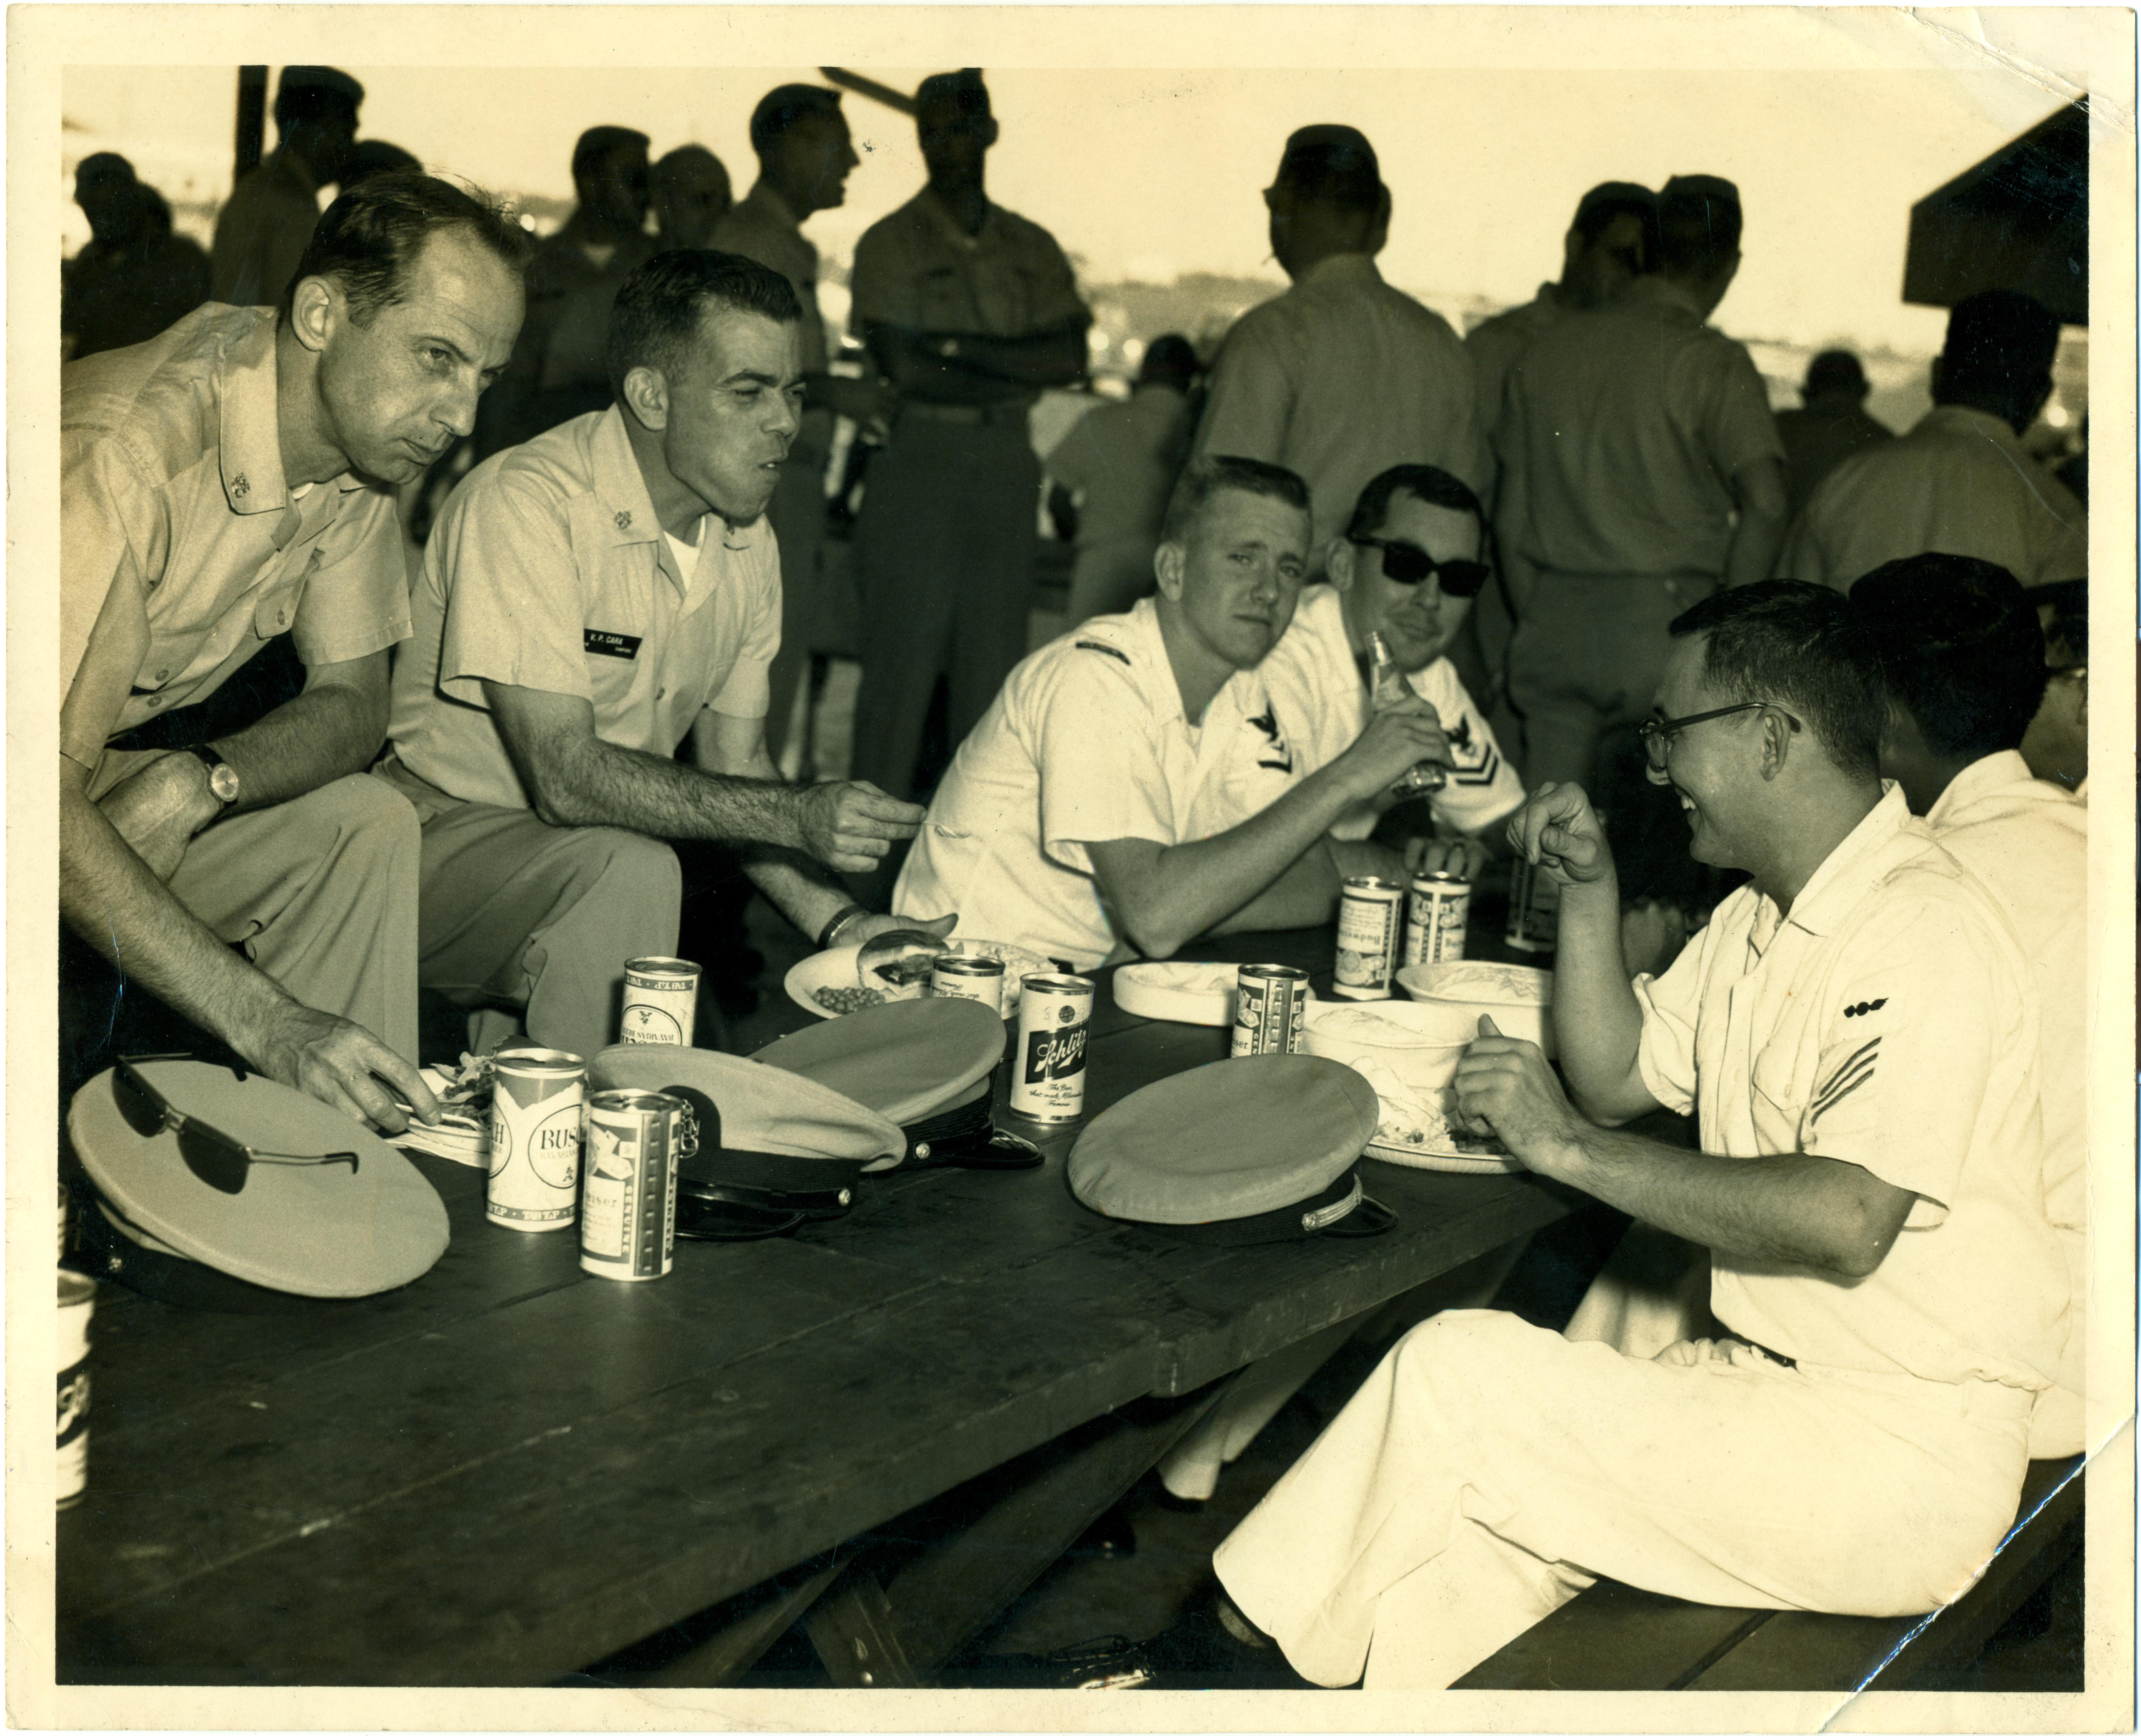 Inspection committee members enjoying a lunch on the base.